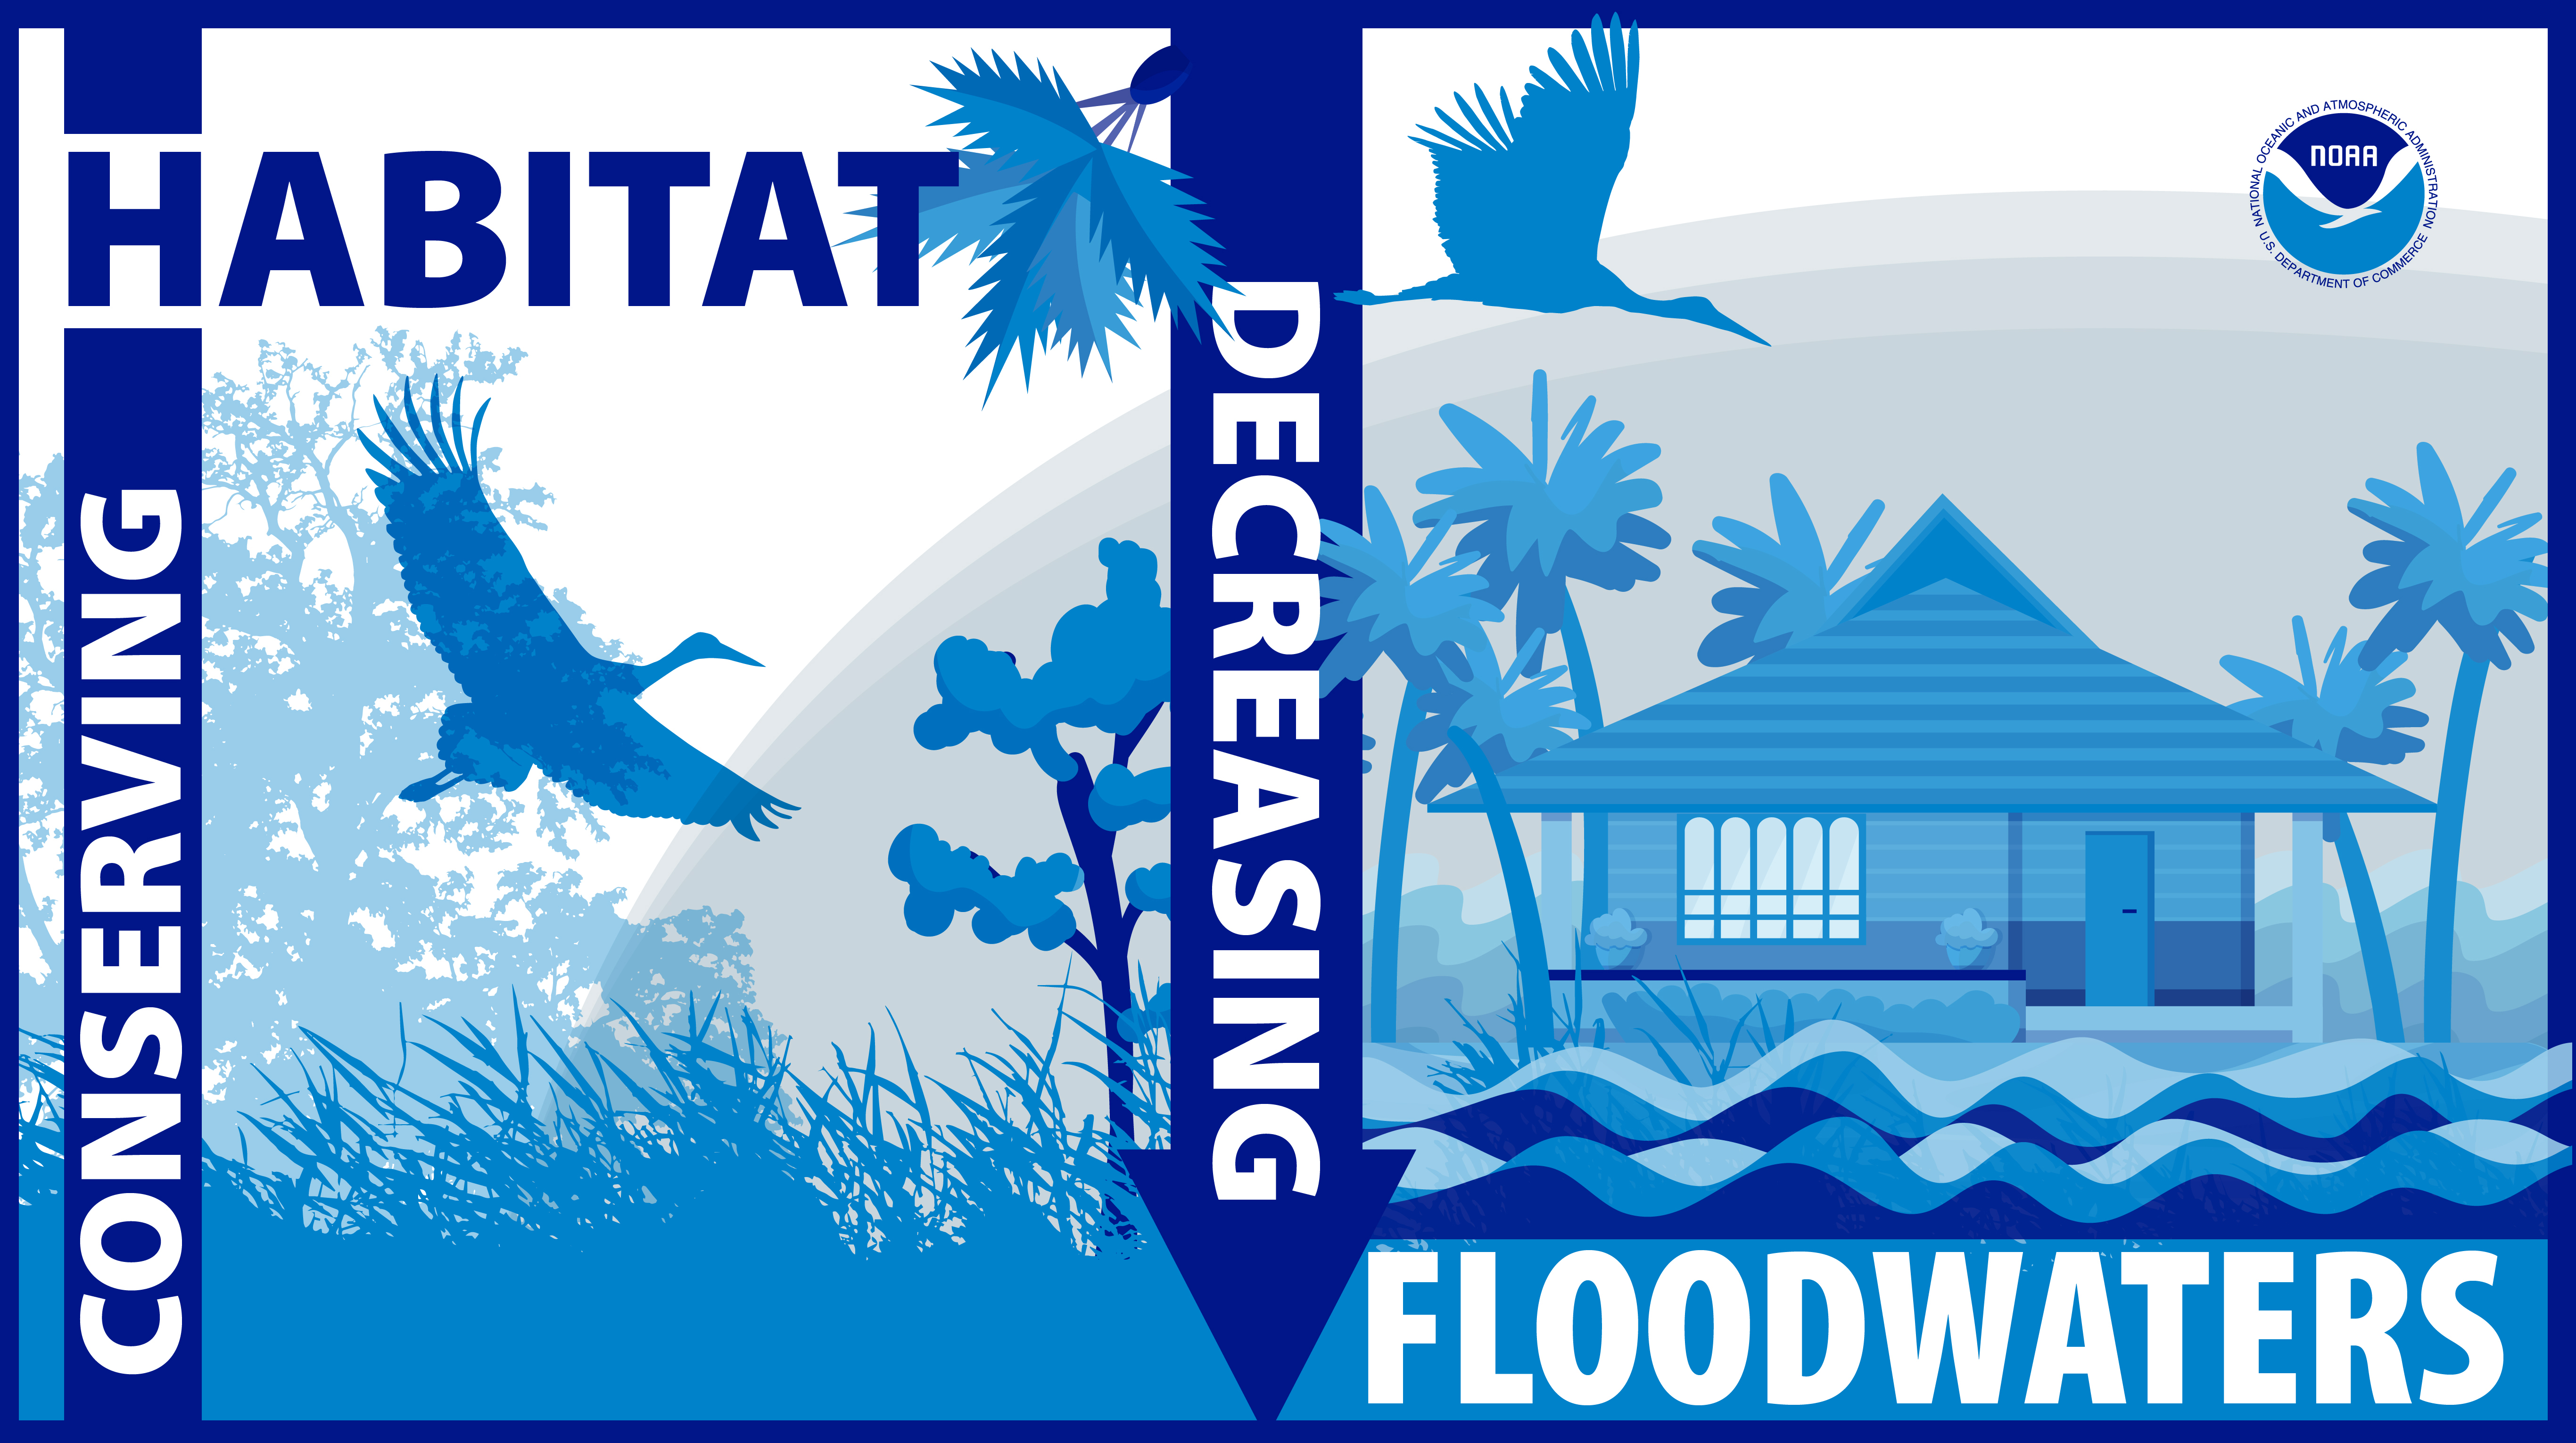 A bird is flying over a marsh and a house is seen with flooding in the foreground. Words include 'Increasing Habitat' and 'Decreasing Floodwaters.'